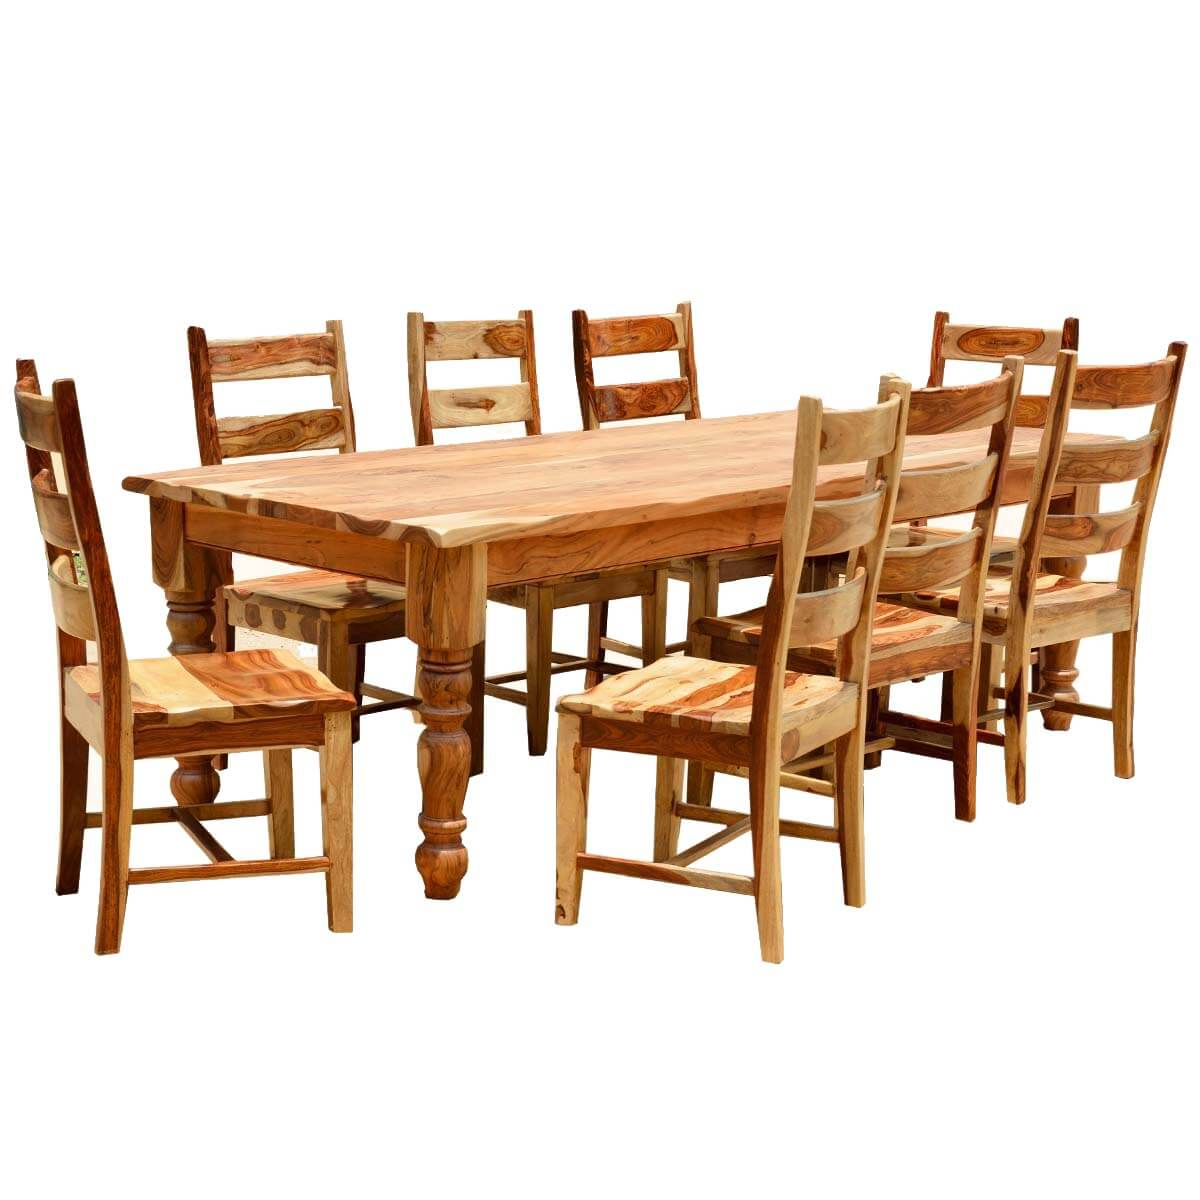 Farmhouse Table And Chairs Set Rustic Solid Wood Farmhouse Dining Room Table Chair Set